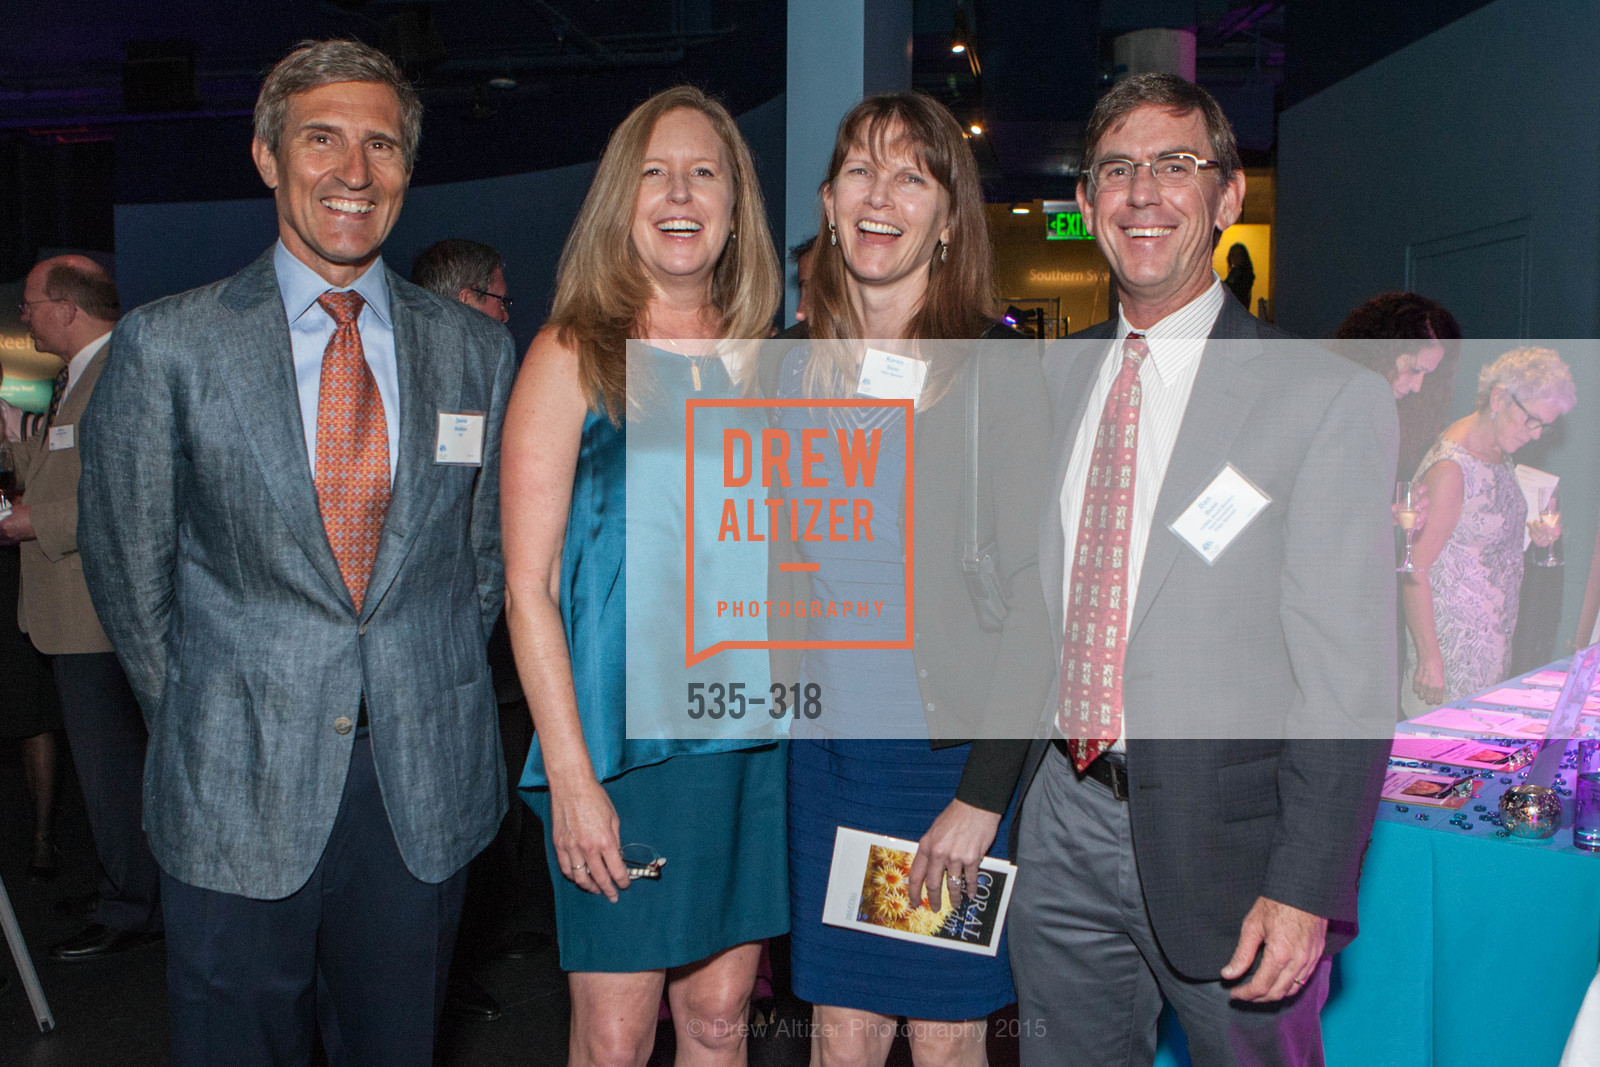 Dave Stanton, Susan Dunn, Karen Dunn, Dan Dunn, Coral Reef Alliance at the California Academy of Sciences, Academy of Sciences, September 26th, 2015,Drew Altizer, Drew Altizer Photography, full-service agency, private events, San Francisco photographer, photographer california